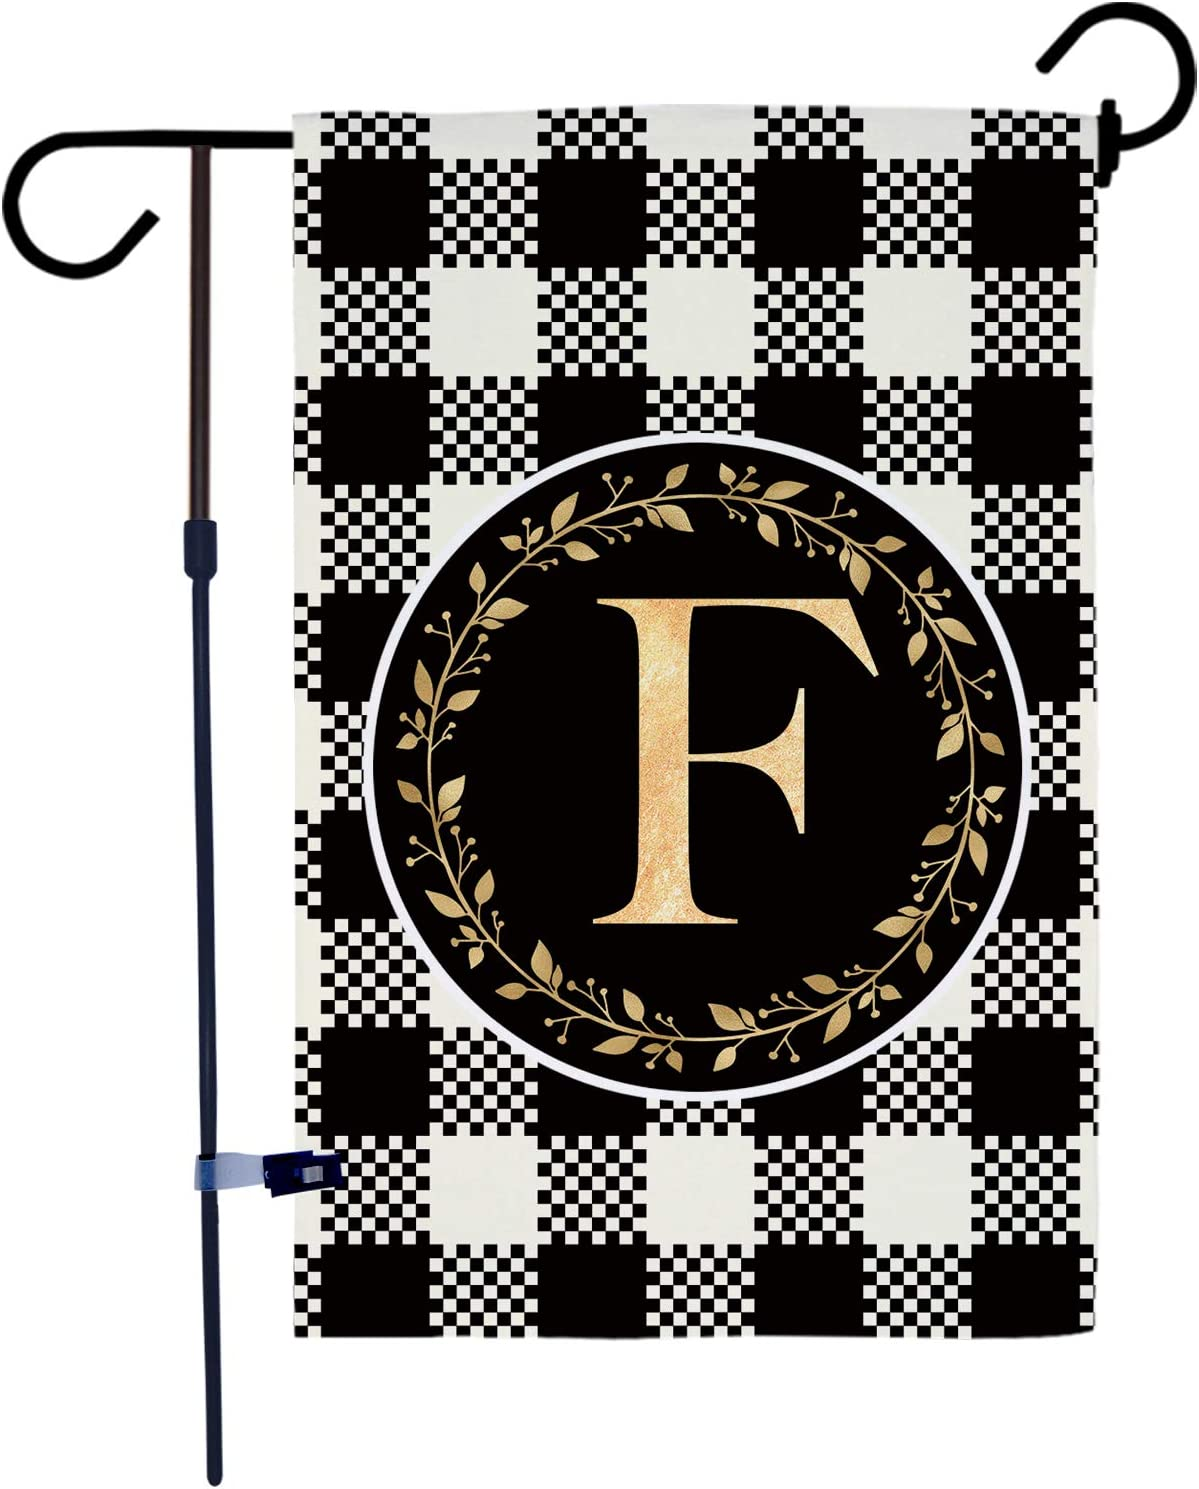 AKPOWER Small Garden Flag Black and White Plaid Check Vertical Double Sided Farmhouse Burlap Yard Outdoor Decor Classic Monogram Letter 12.5 x 18 Inch F